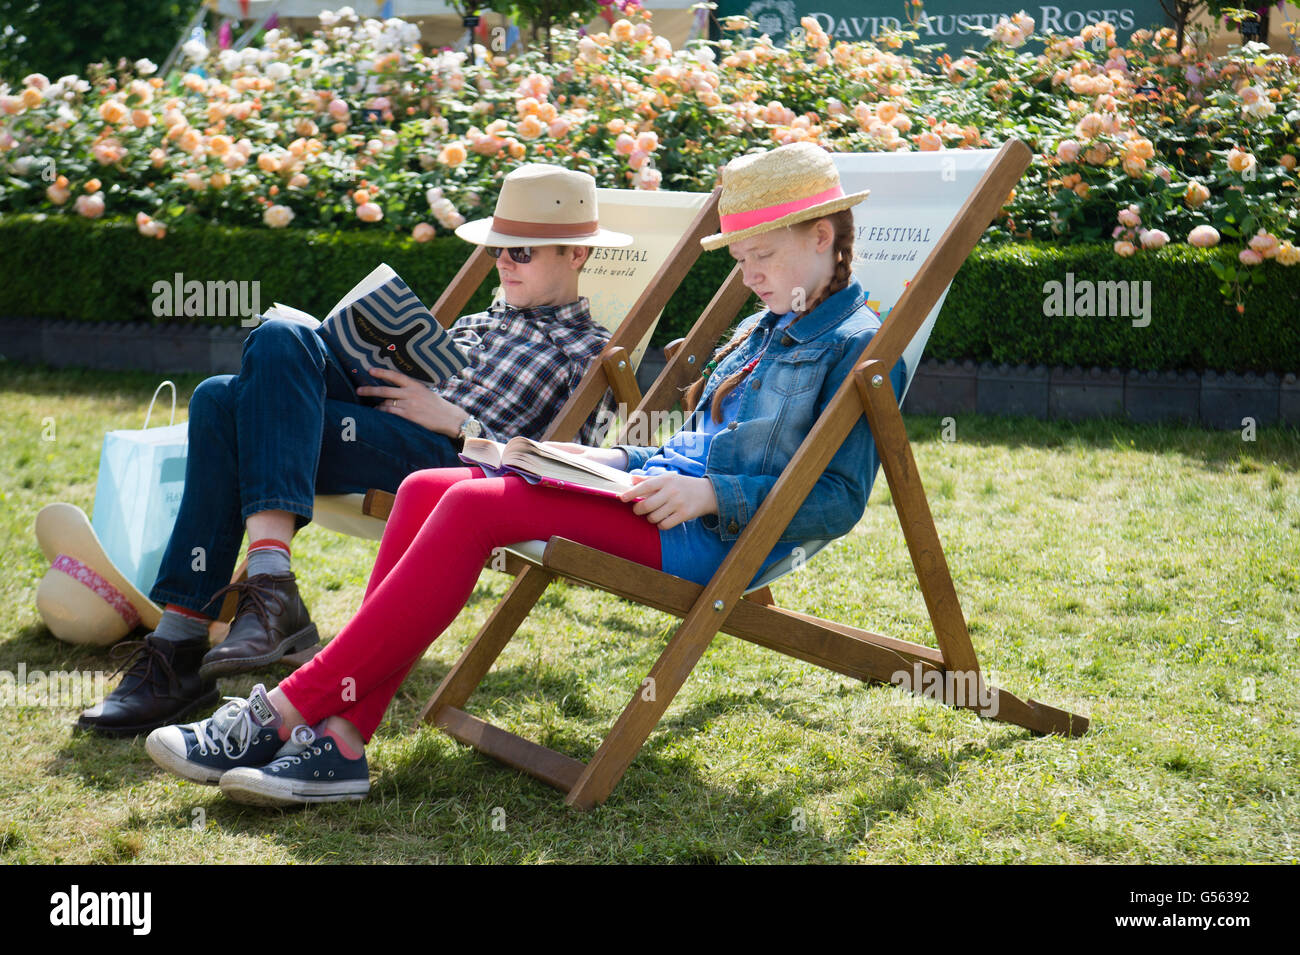 A couple, man and woman, sitting in deckchairs reading books in the warm sunshine a t  the annual The Hay Festival - Stock Image